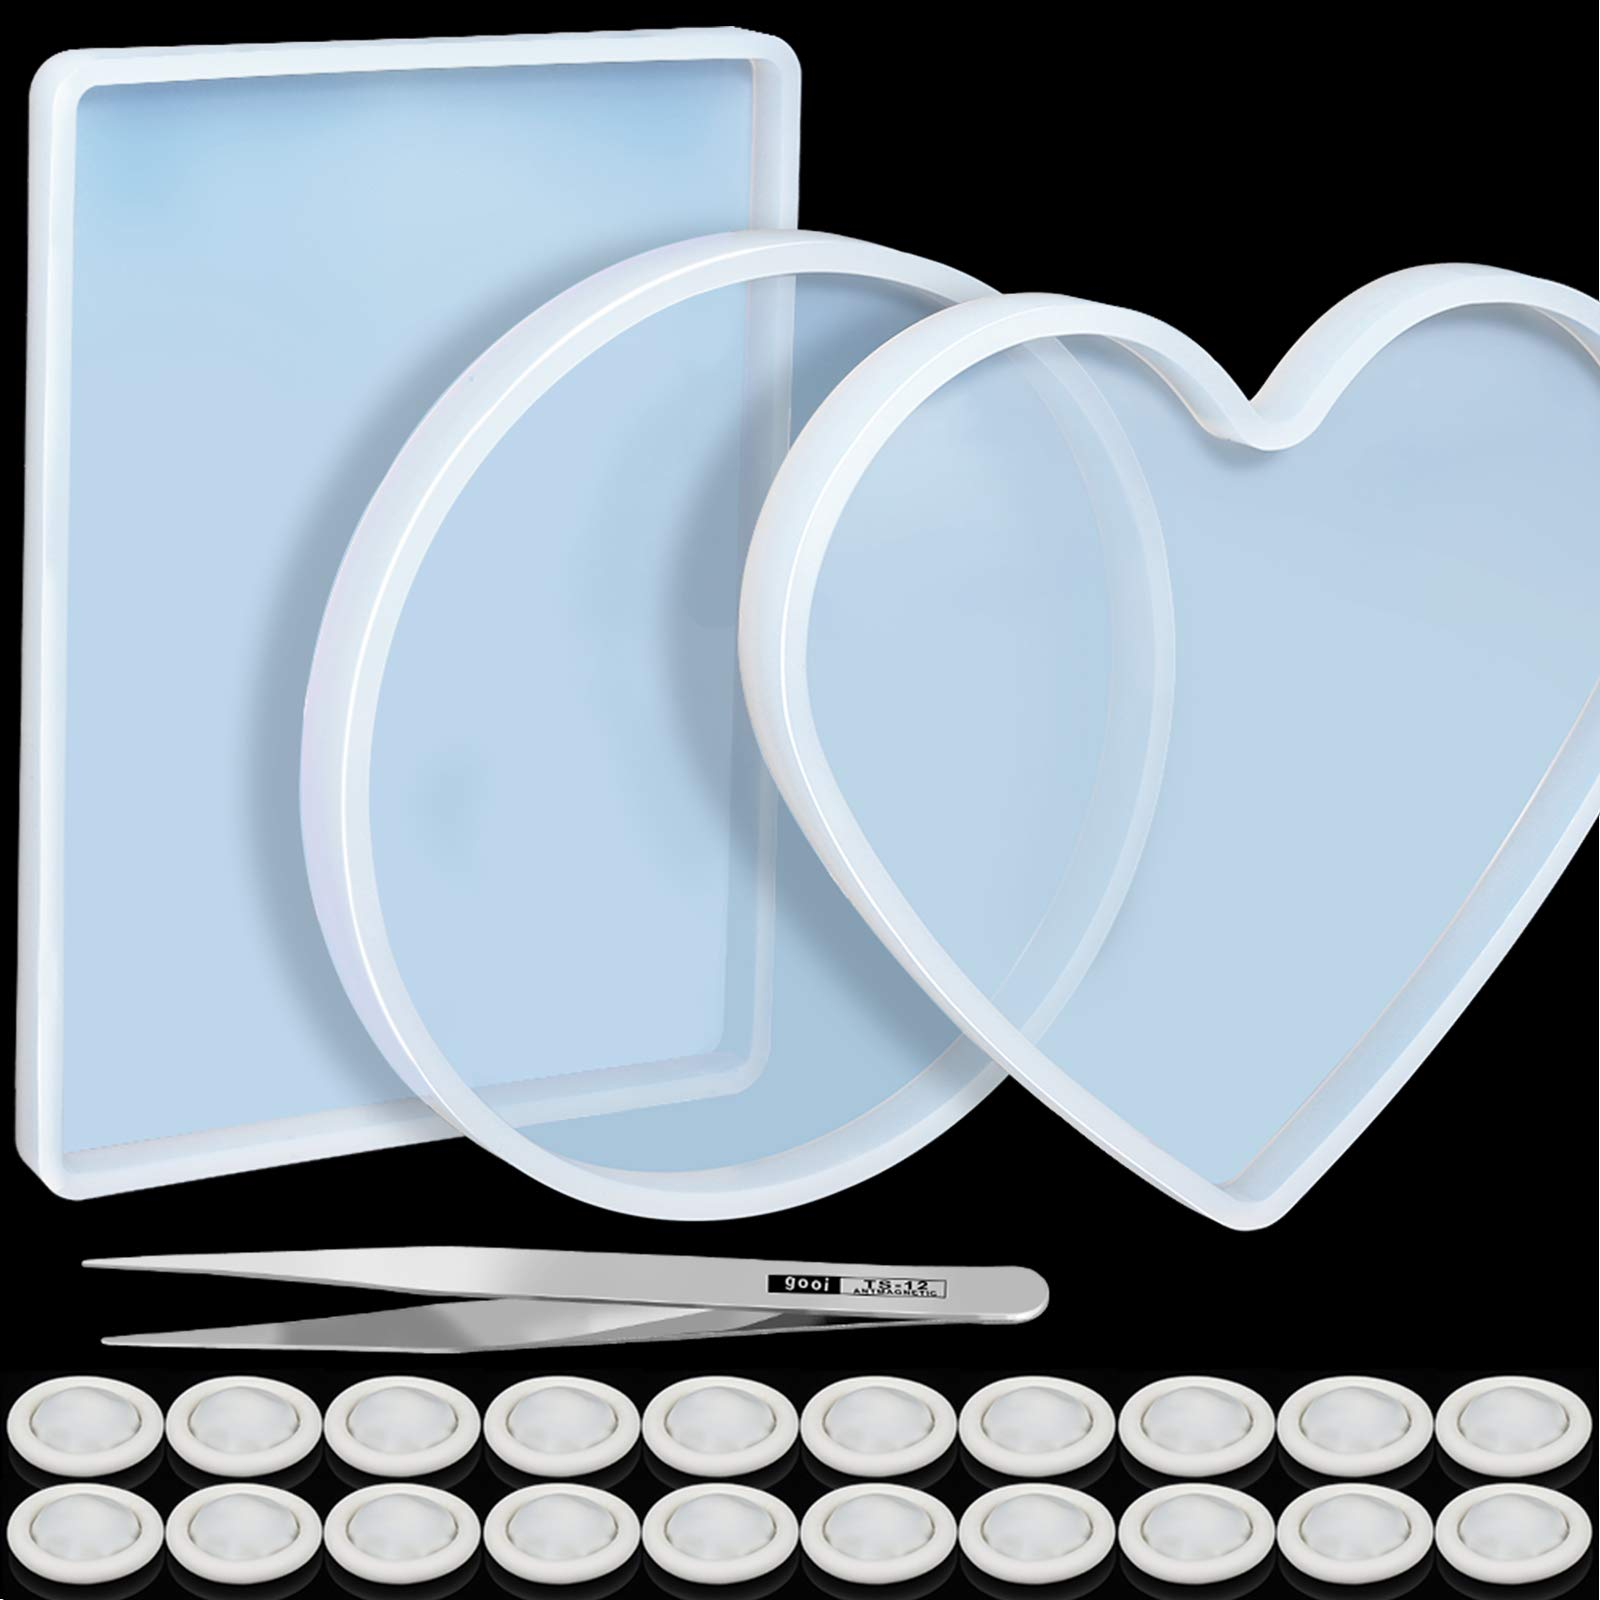 3 Pcs Large Resin Mold,LEOBRO Flexible Silicone Molds, Include Round, Rectangle, Heart Shaped Coaster Mold, Decorative Mold, Come With 20 Pcs Finger Cots, 1Pcs Tweezers